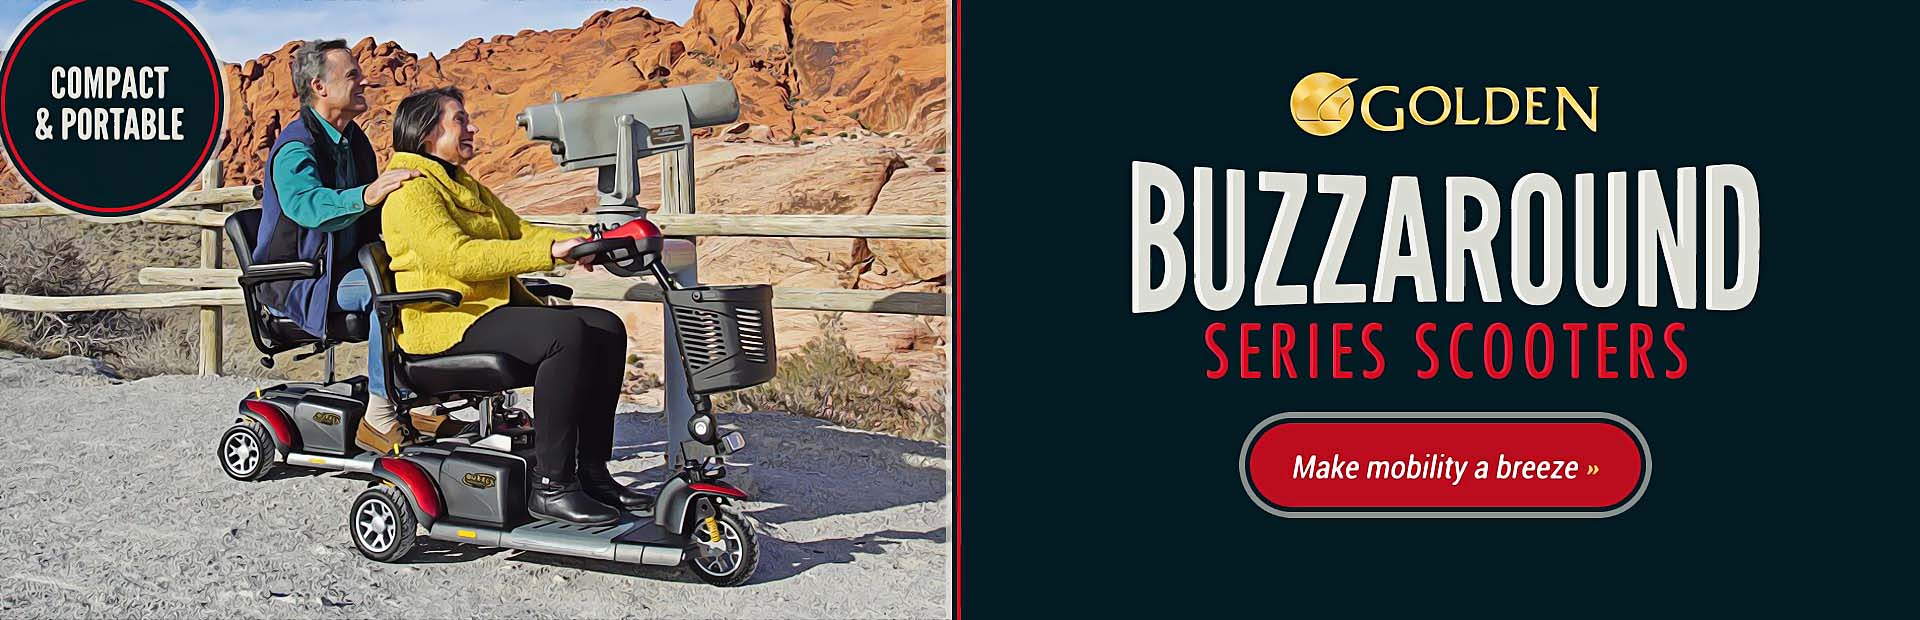 Golden Technologies Buzzaround Series Scooters: Click here for details.